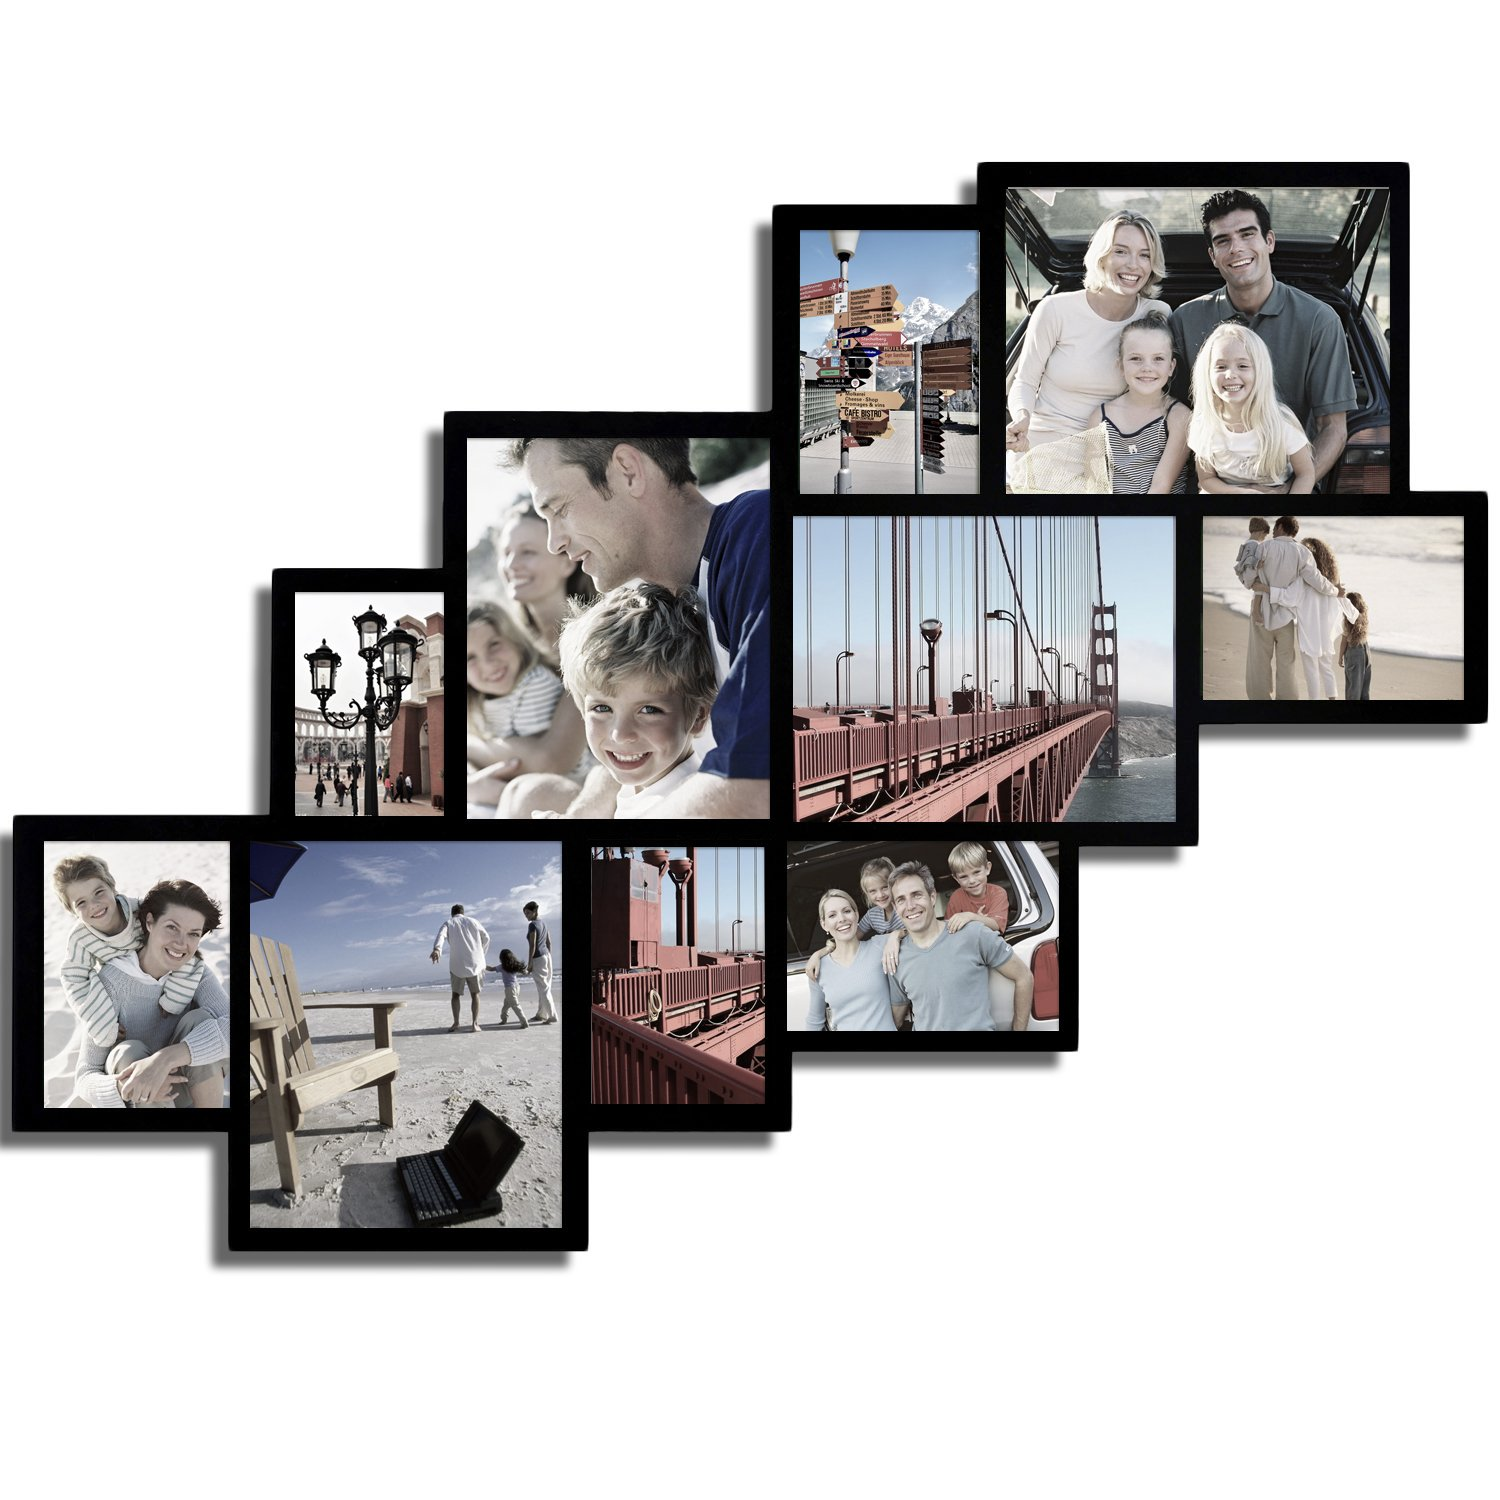 Amazon adeco decorative black wood wall hanging picture amazon adeco decorative black wood wall hanging picture photo frame collage 10 openings clustered various sizes 4 8x10 5 5x7 one 4x6 jeuxipadfo Choice Image